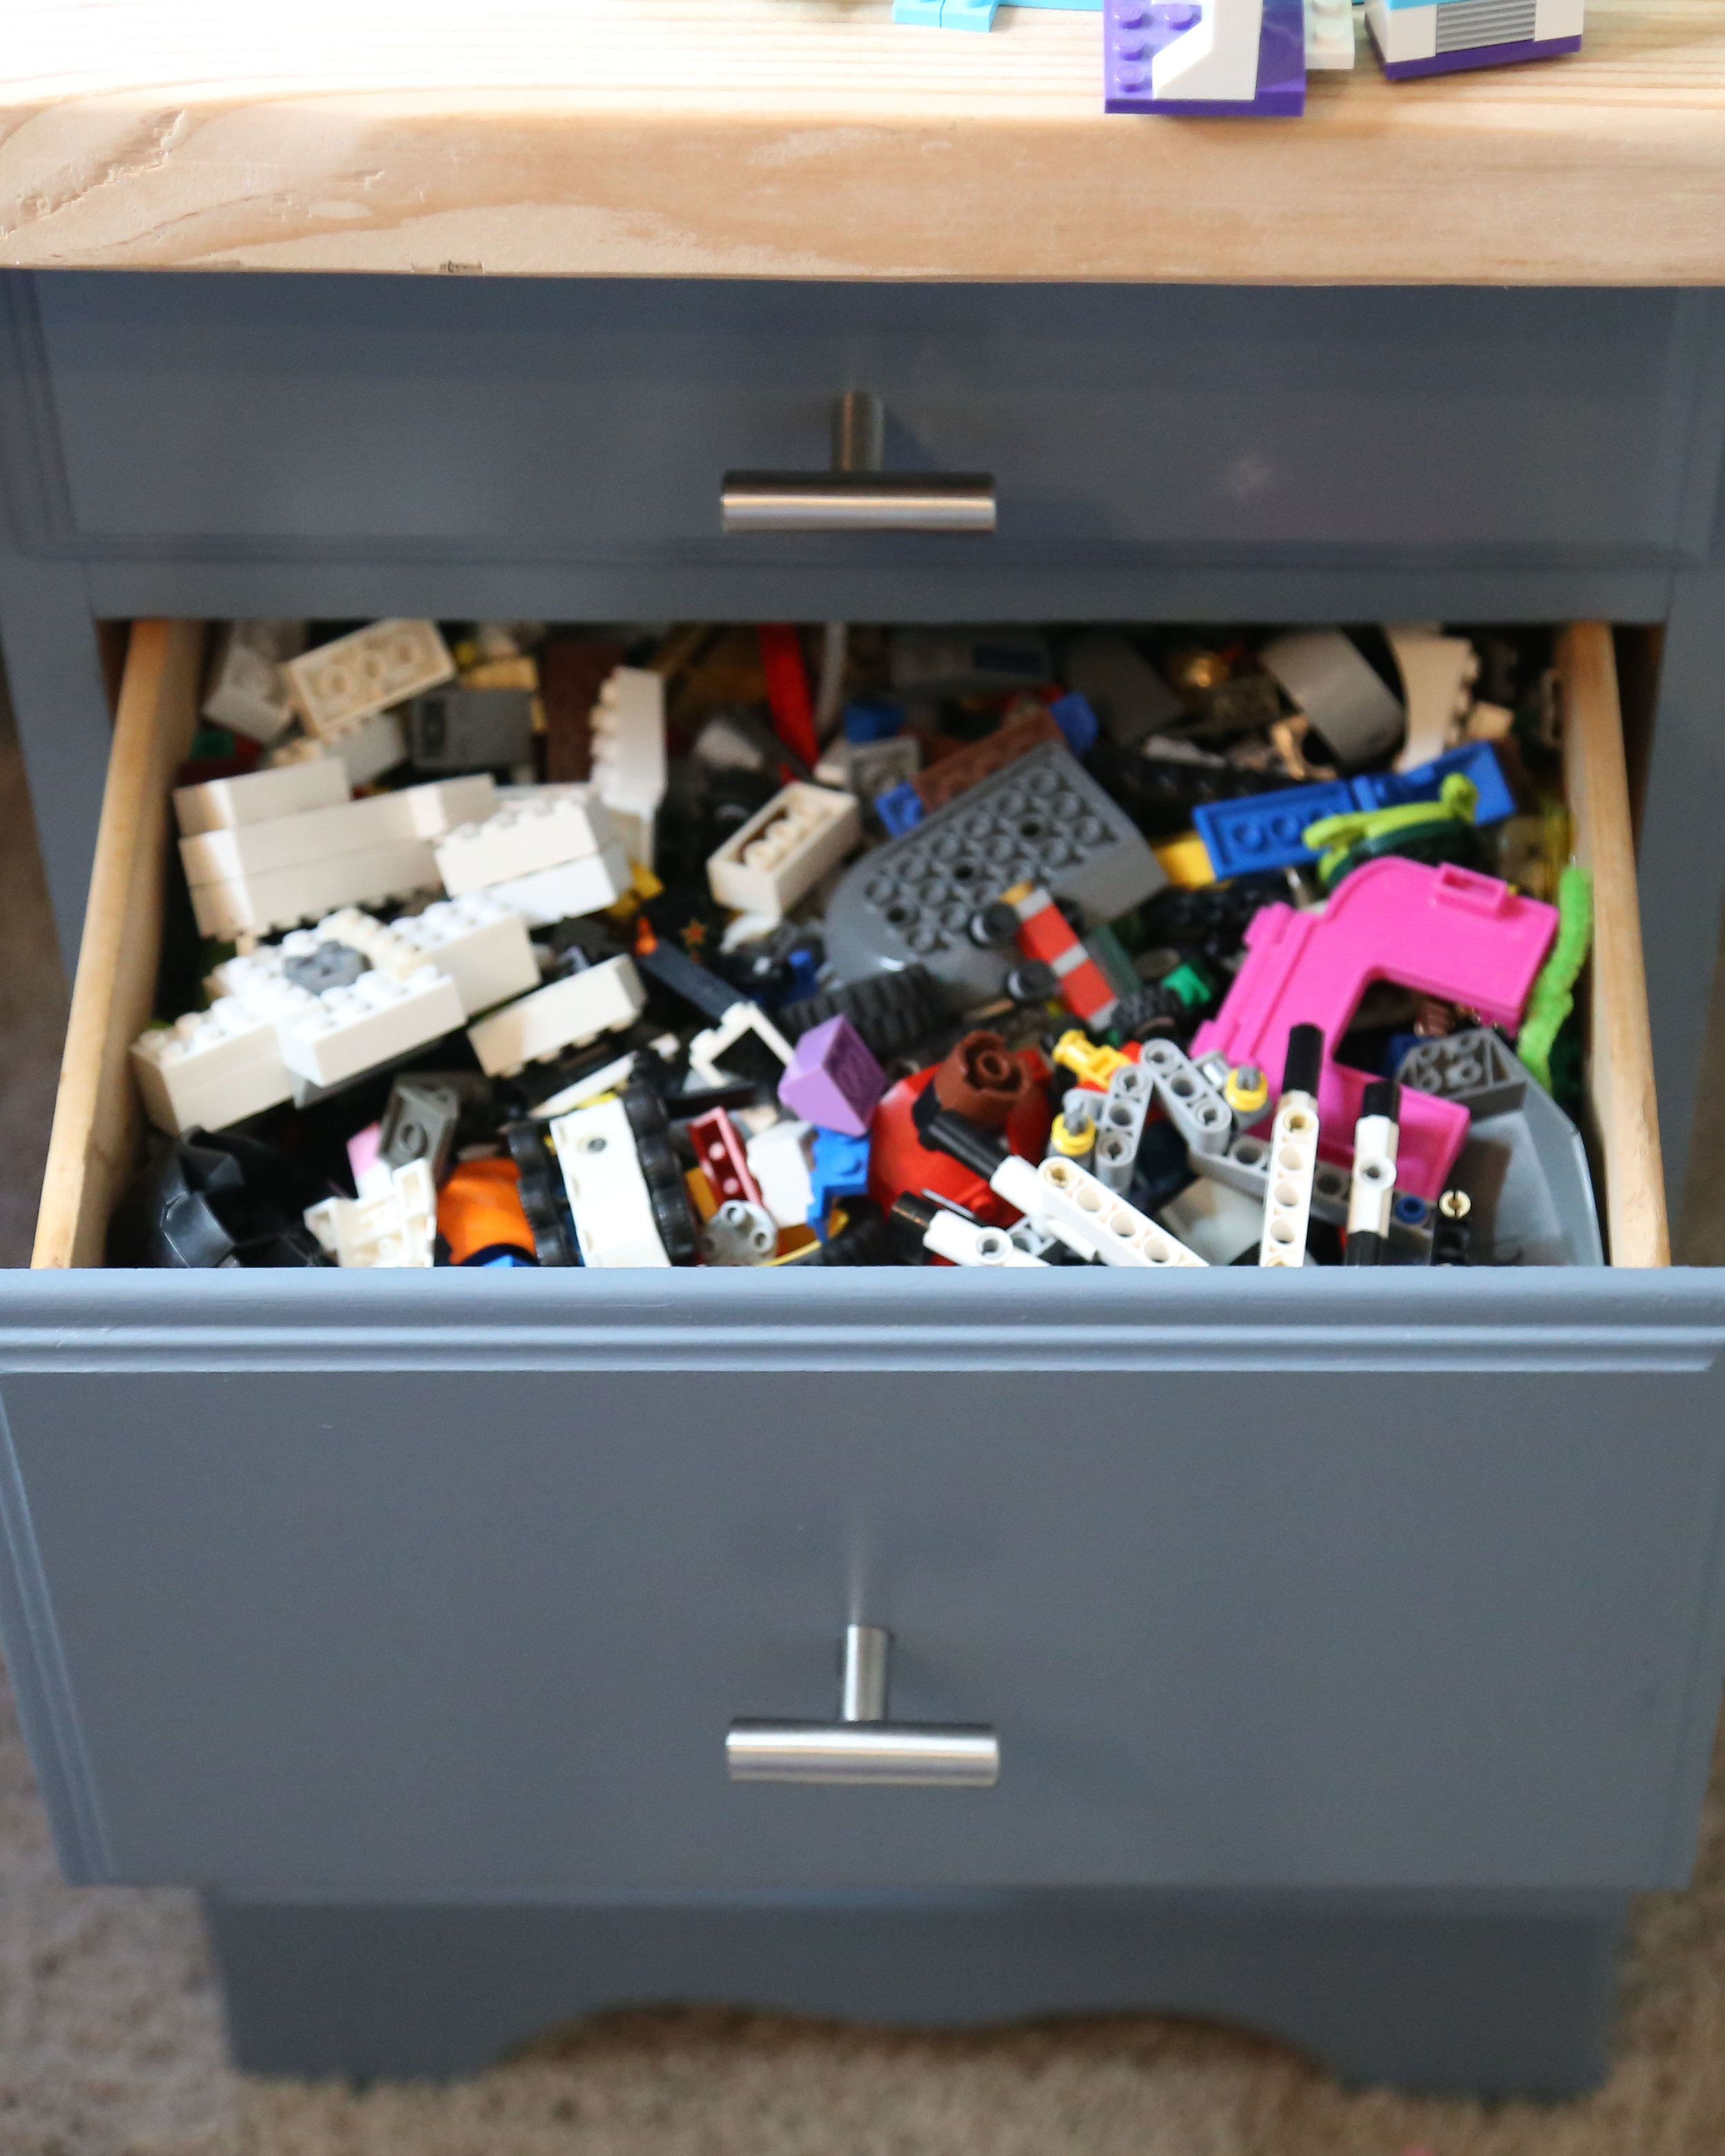 LEGO STORAGE: We found 2 matching nightstands at the thrift store too.  A little paint and new hardware and we had lego storage for under $30.